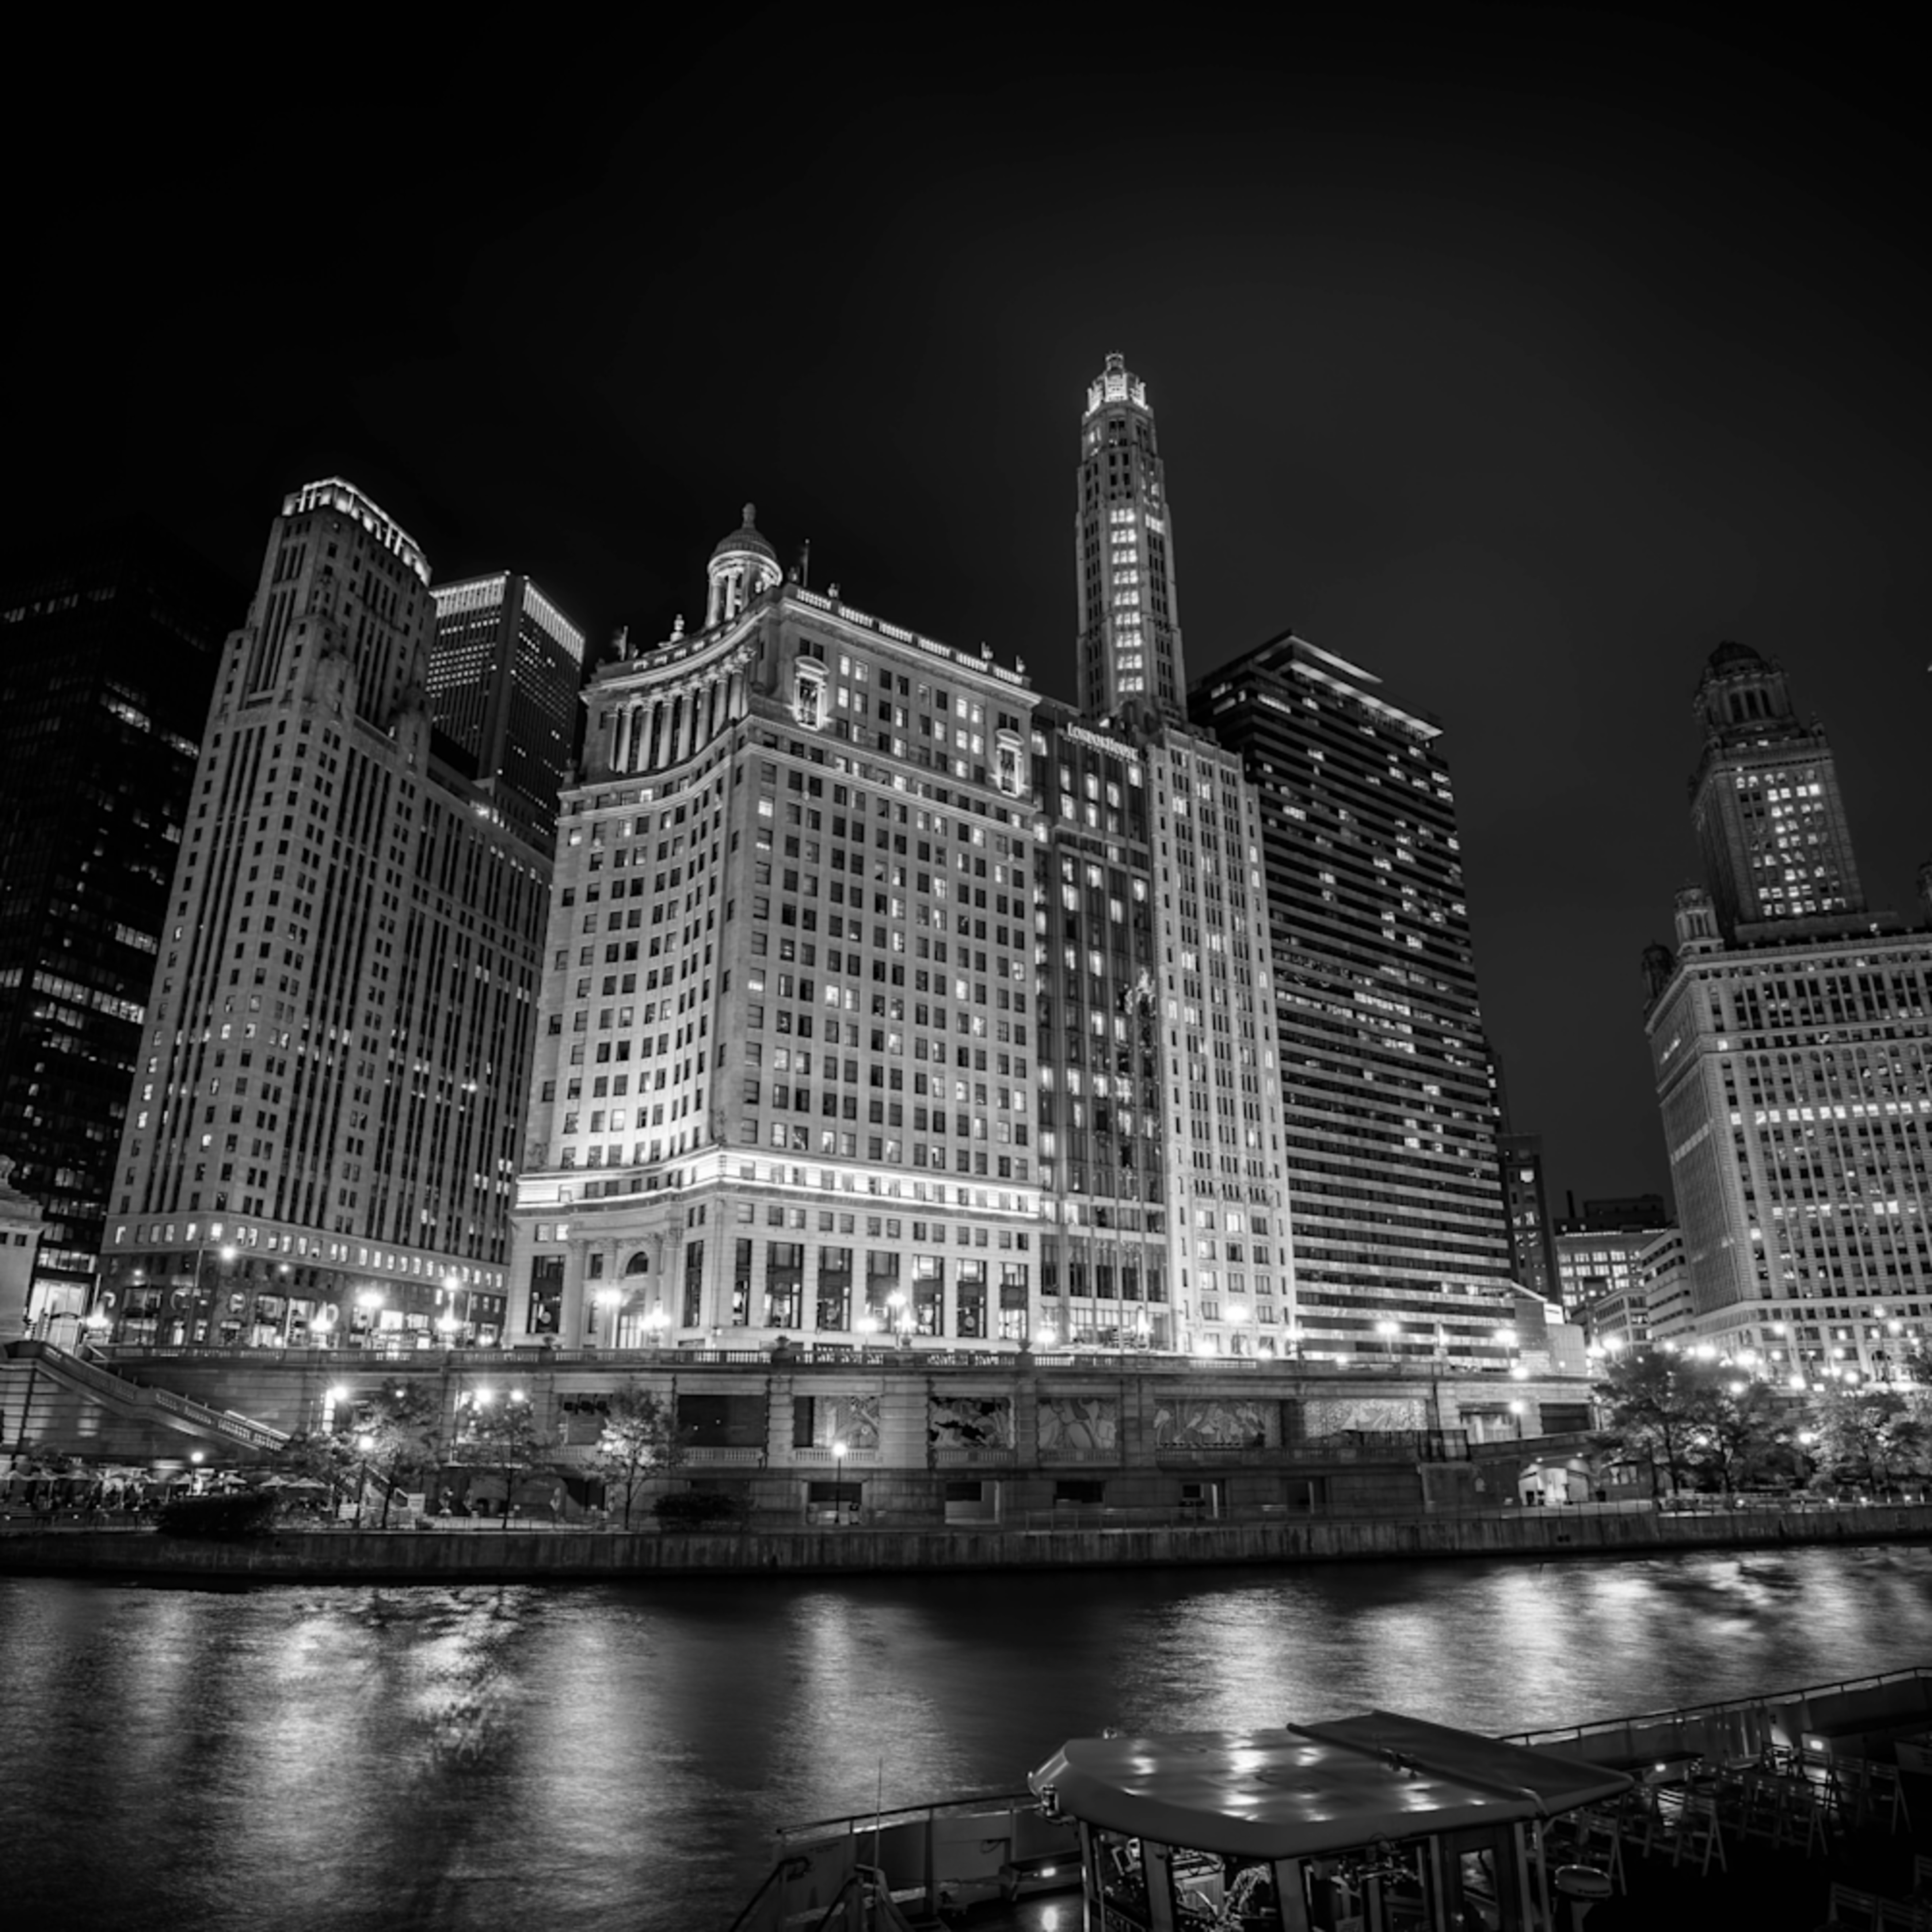 London house chicago black and white owmkzx